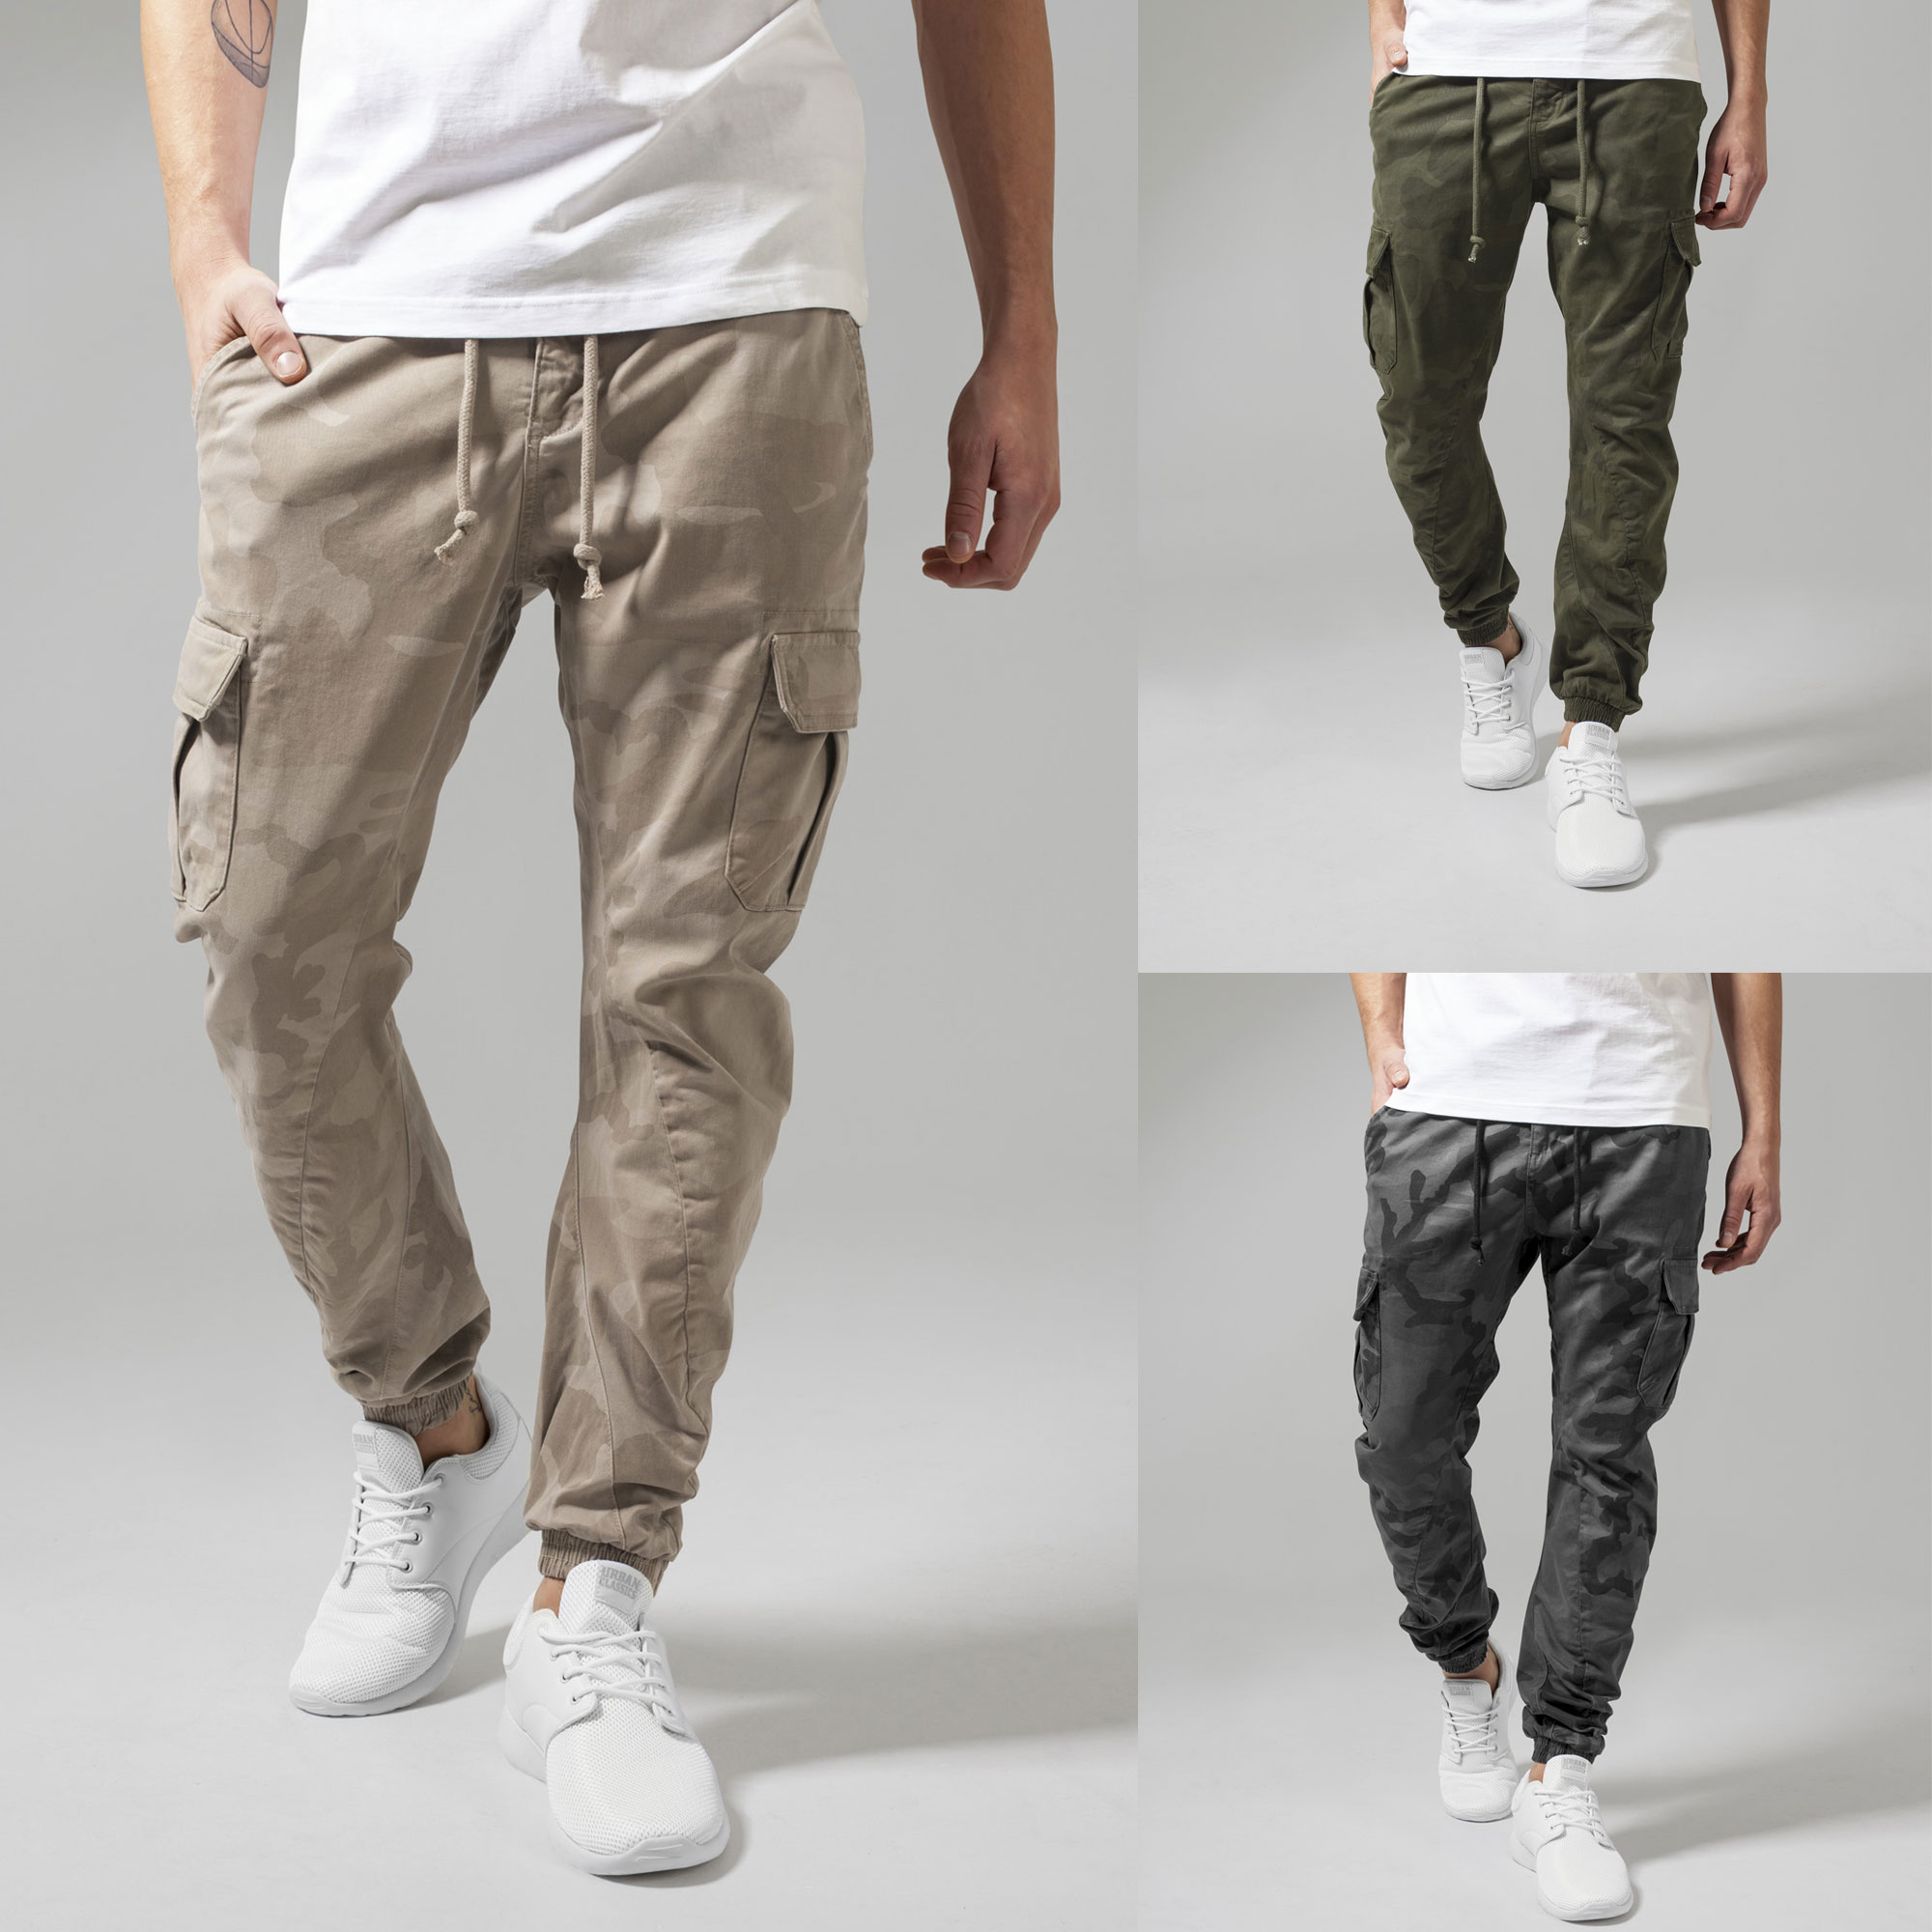 Details about Urban classics Men's Camo Cargo Trousers Skinny Jeans Sweatpants Chinos Jogging